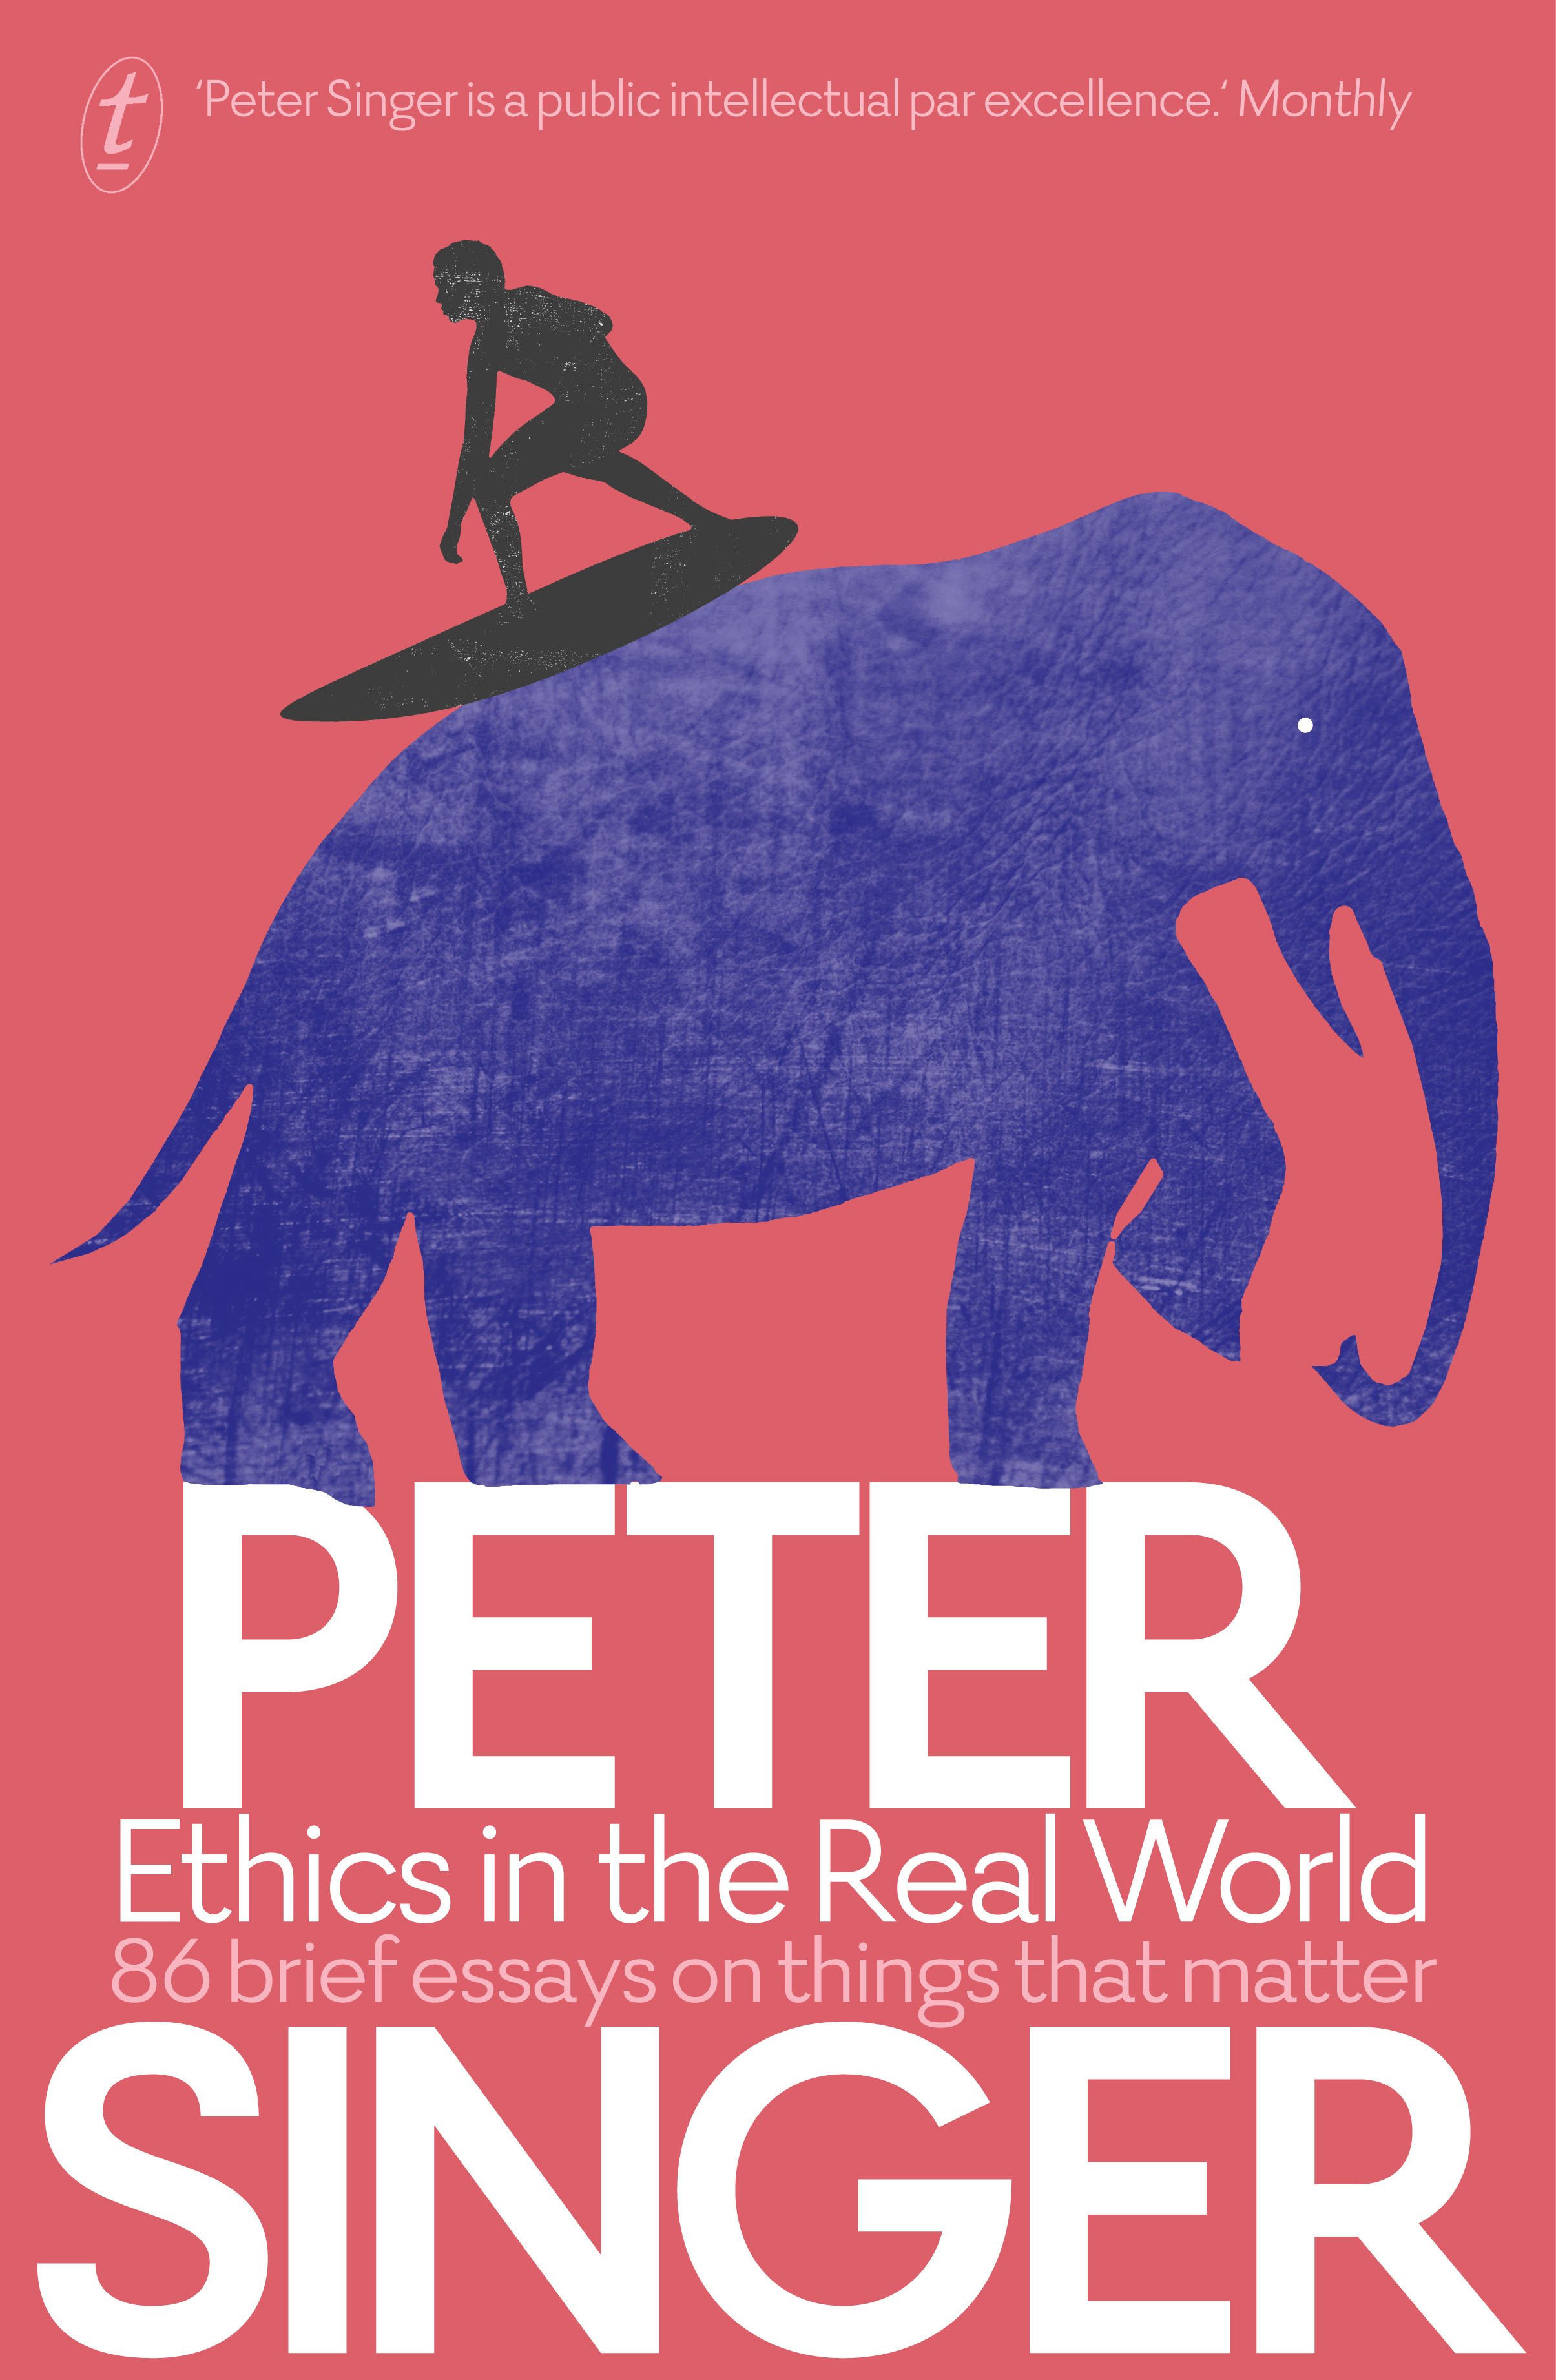 Ethics in the Real World 86 Brief Essays on Things that Matter